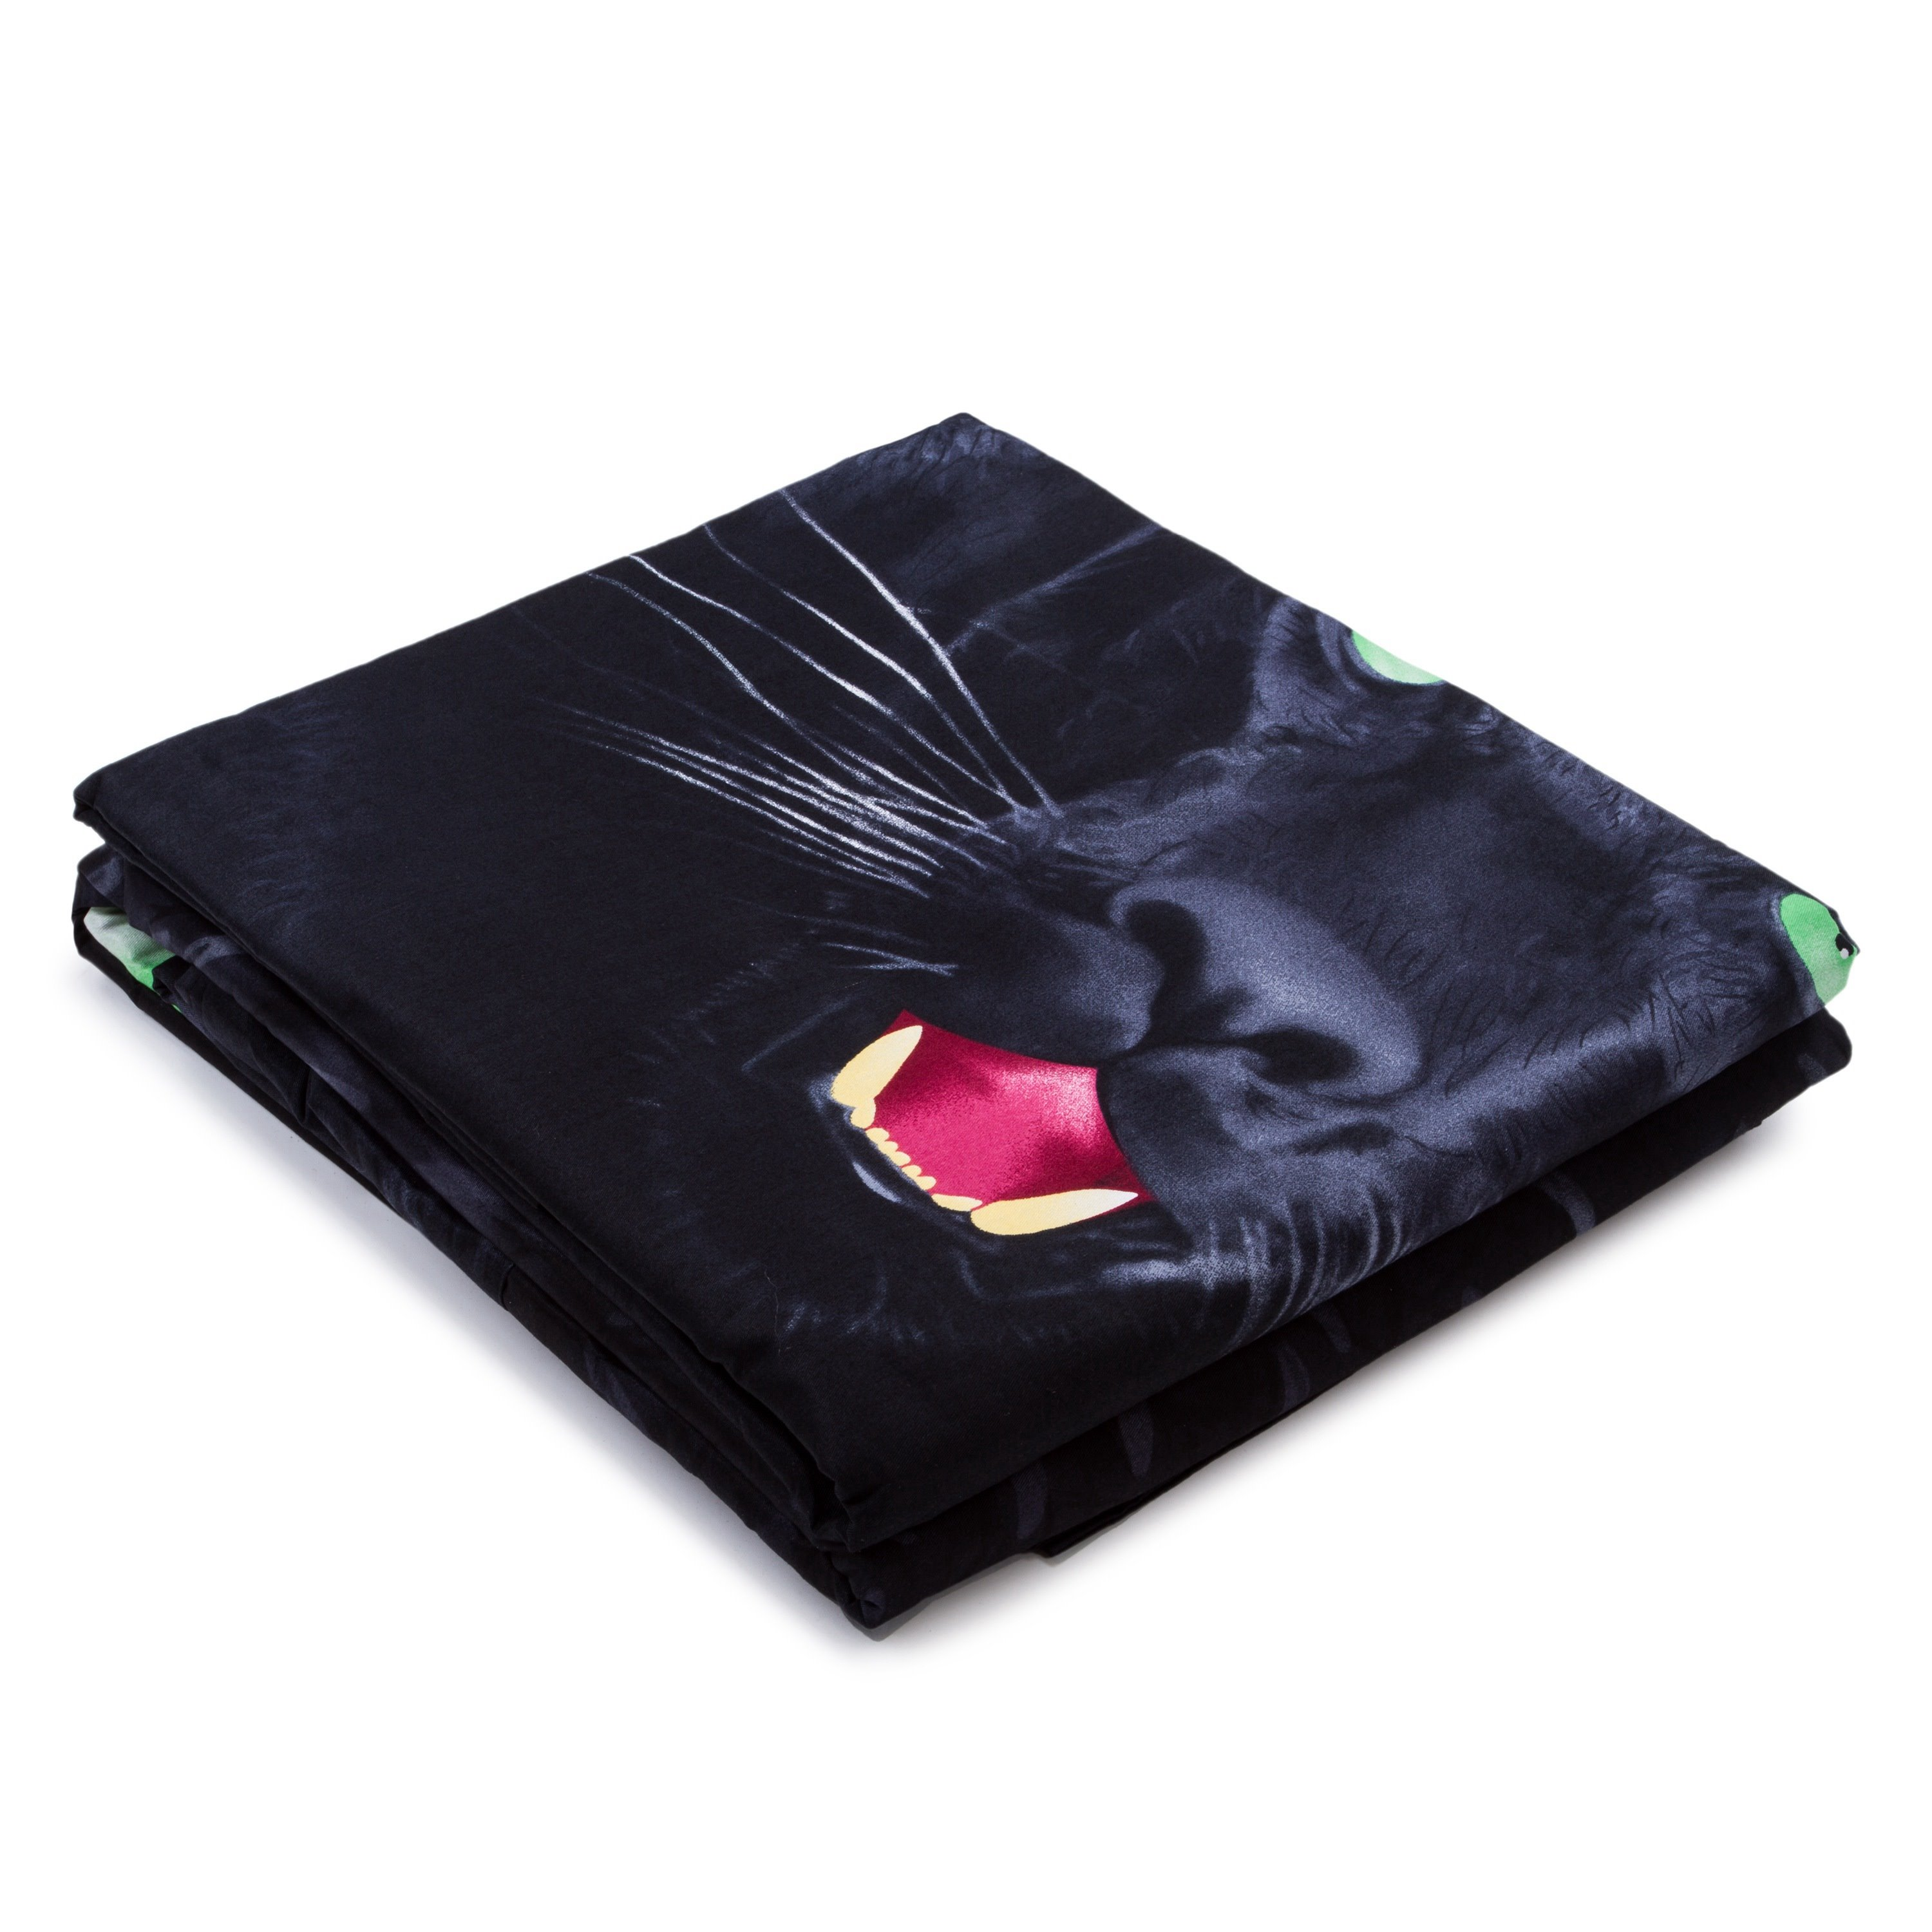 3D Black Panther Printed Cotton 4-Piece Bedding Sets/Duvet Covers